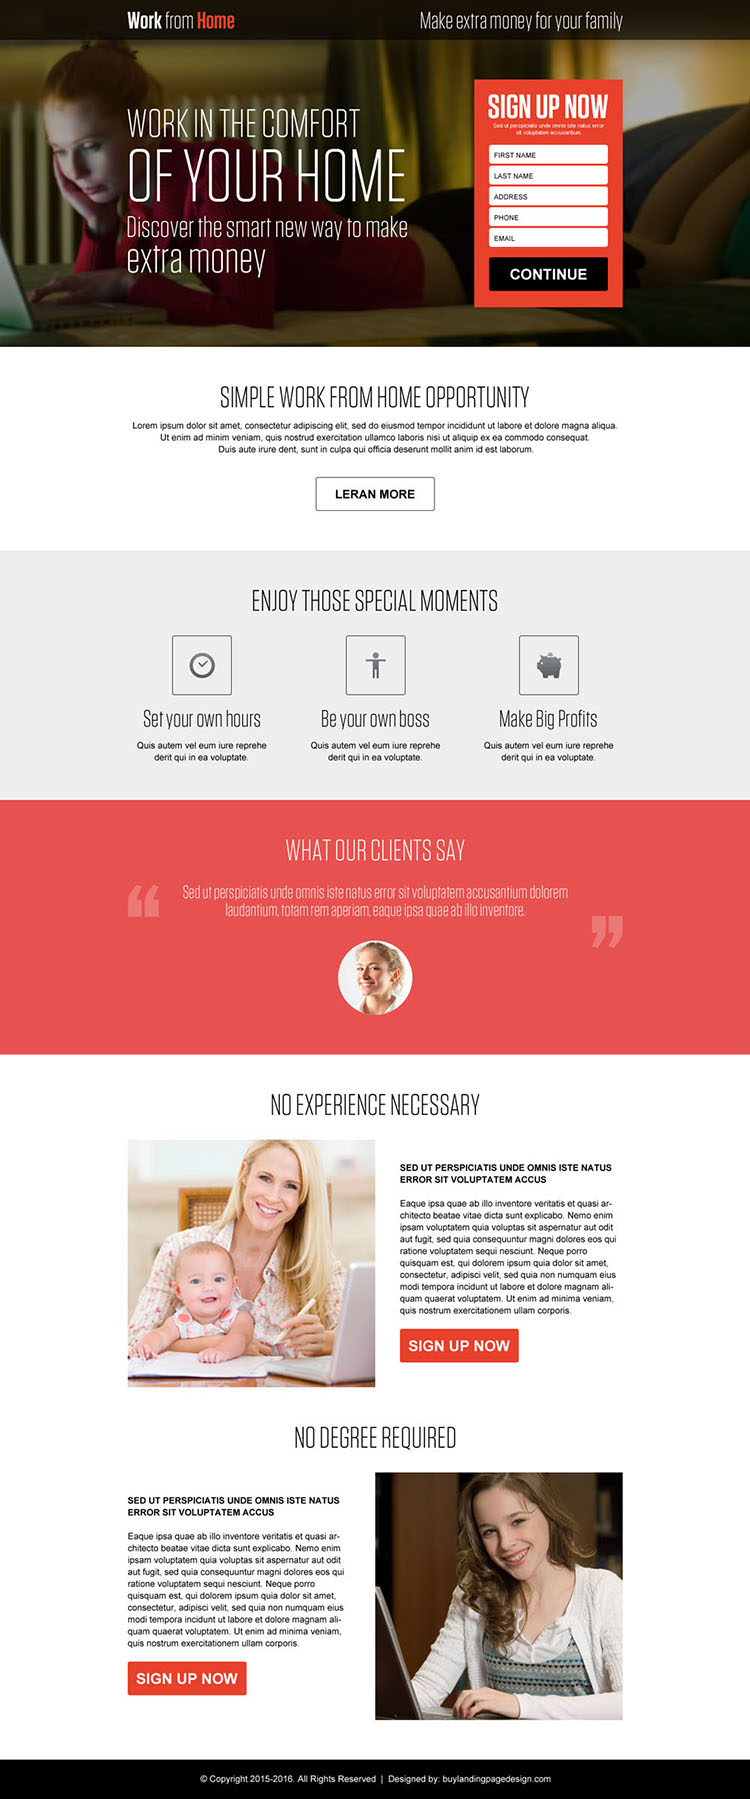 make money from the comfort of your home landing page design